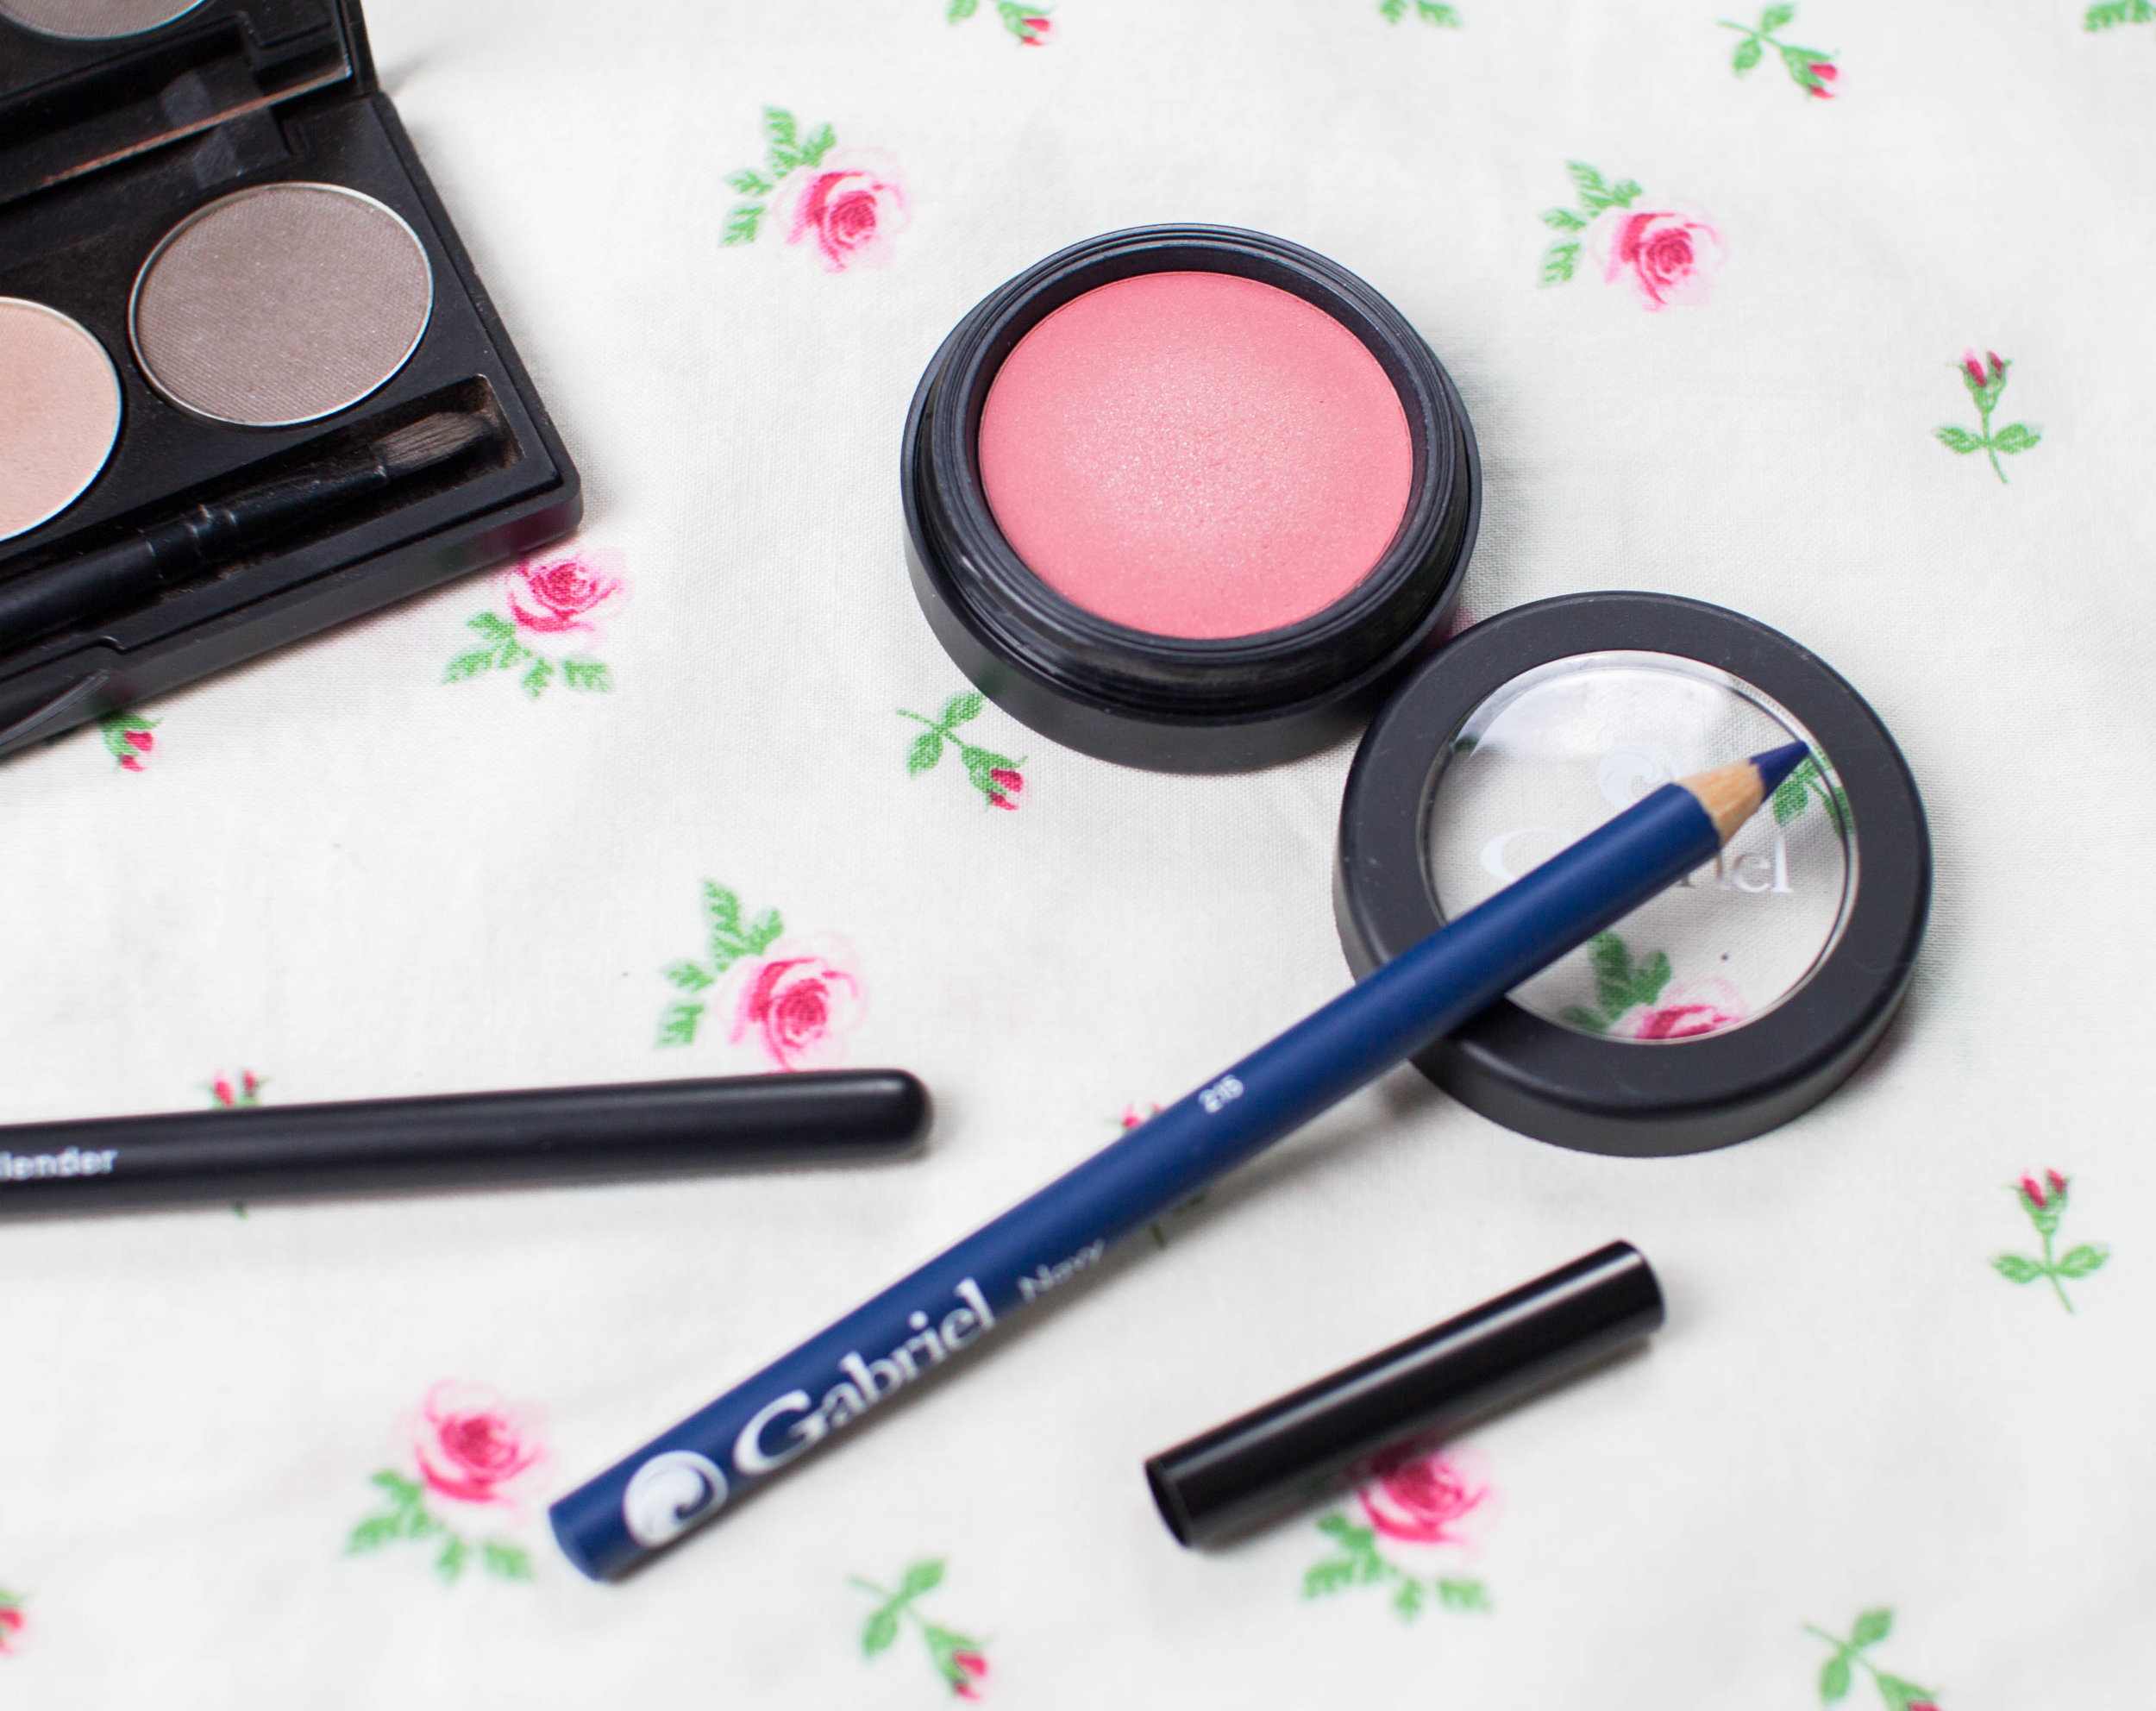 Gluten Free, All Natural Blush and Eyeliner